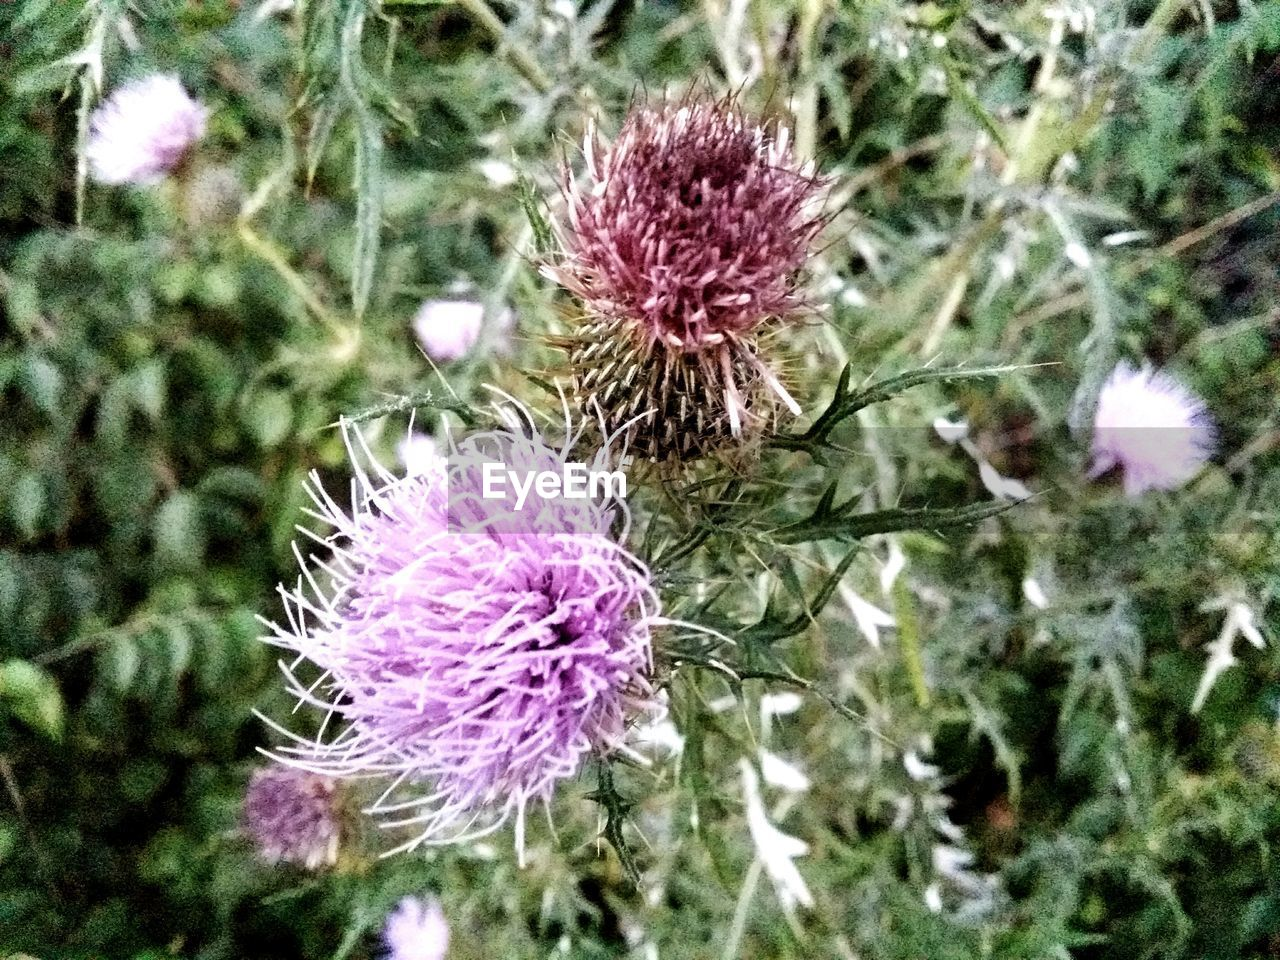 flower, thistle, purple, flower head, nature, fragility, growth, plant, focus on foreground, no people, day, freshness, beauty in nature, outdoors, blooming, close-up, eastern purple coneflower